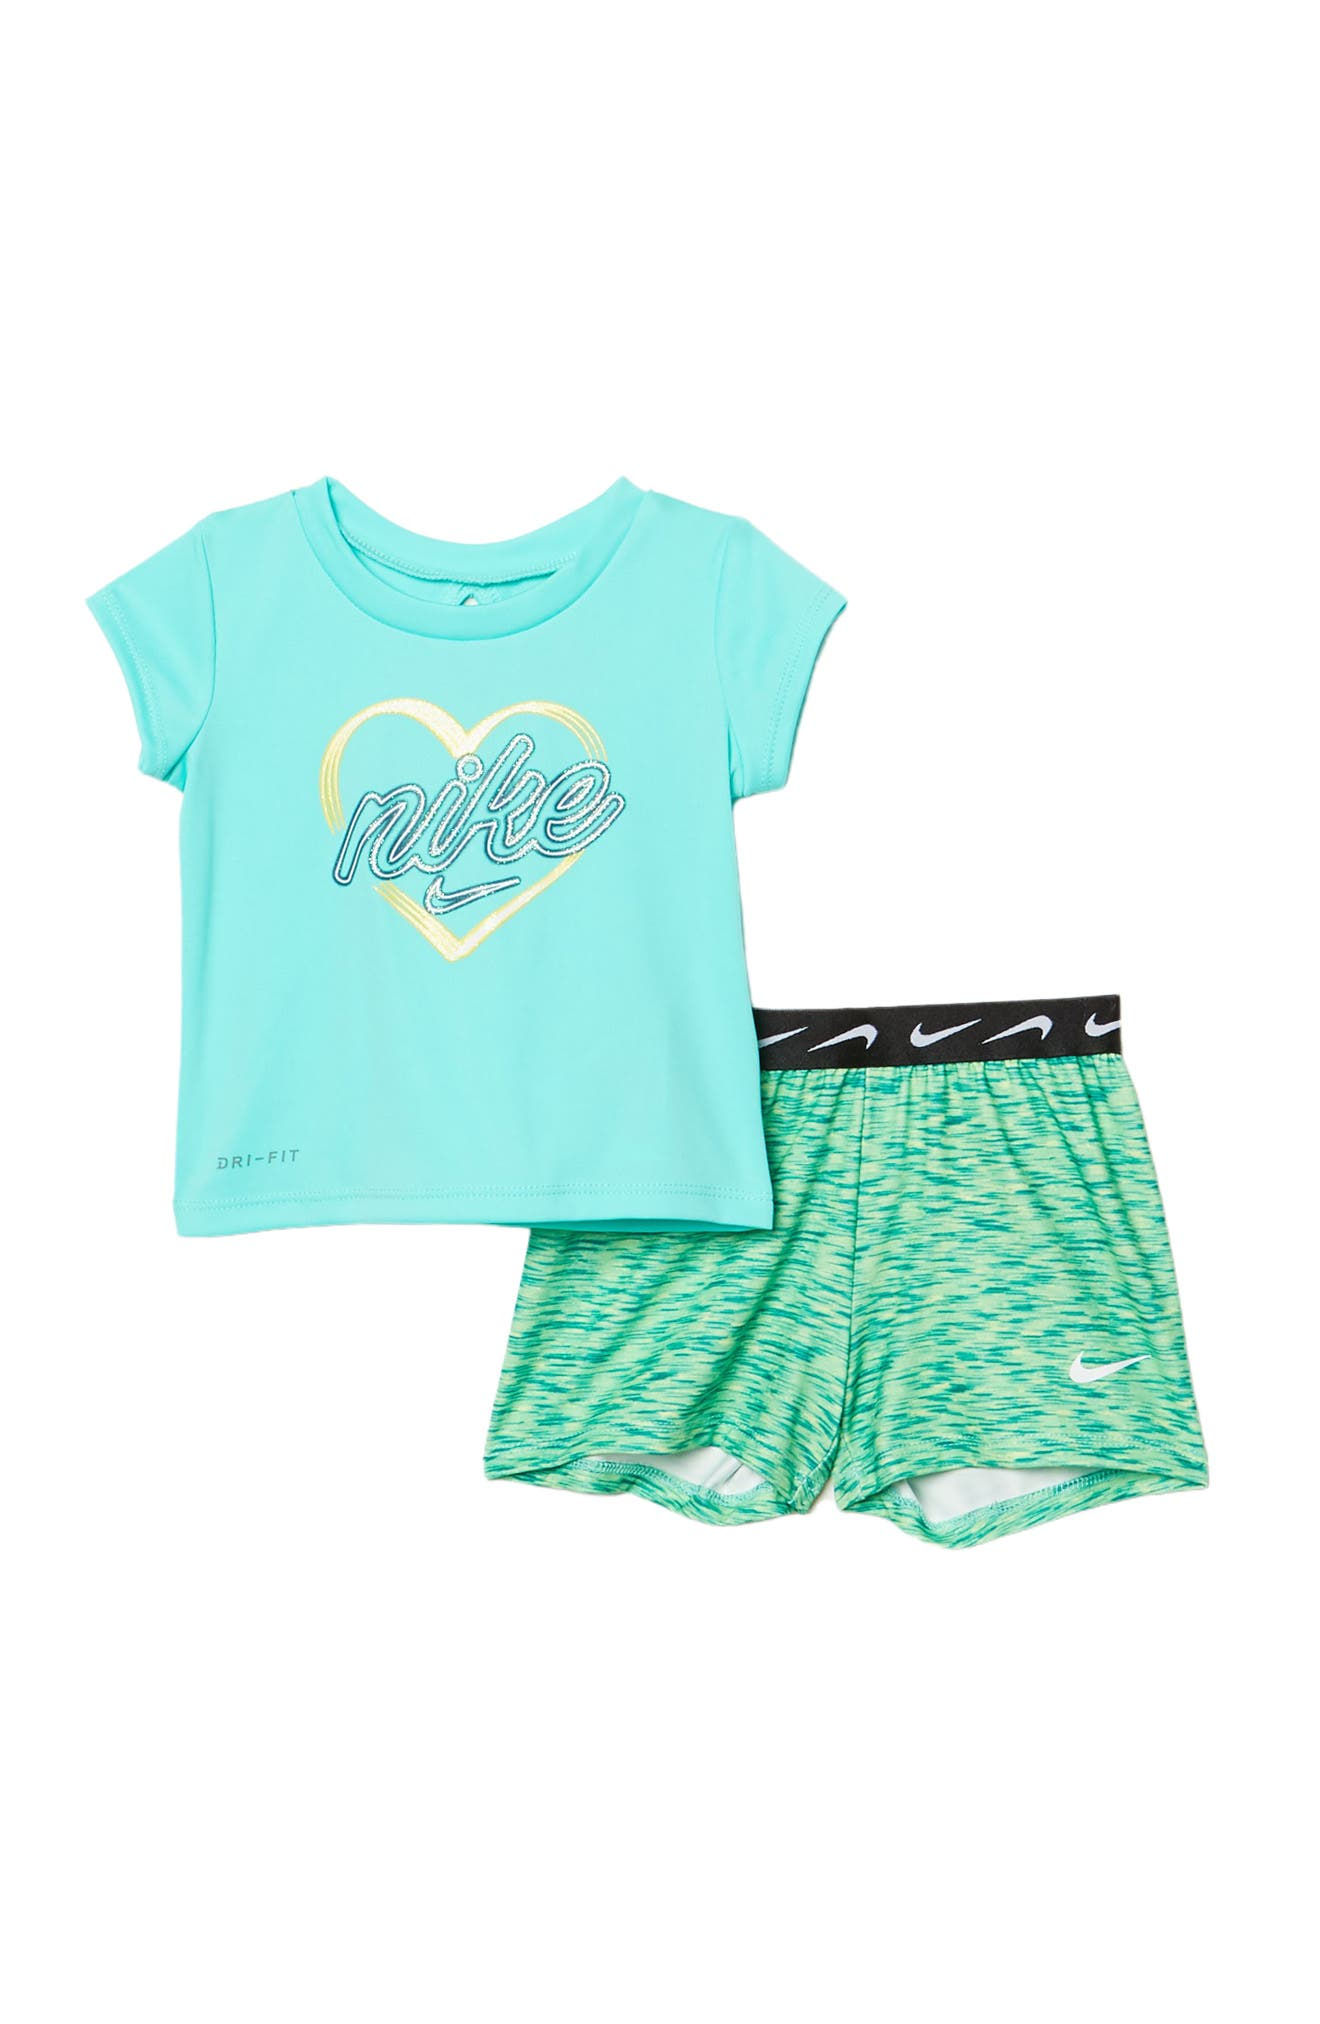 Image of Nike Graphic Top & Shorts 2-Piece Set